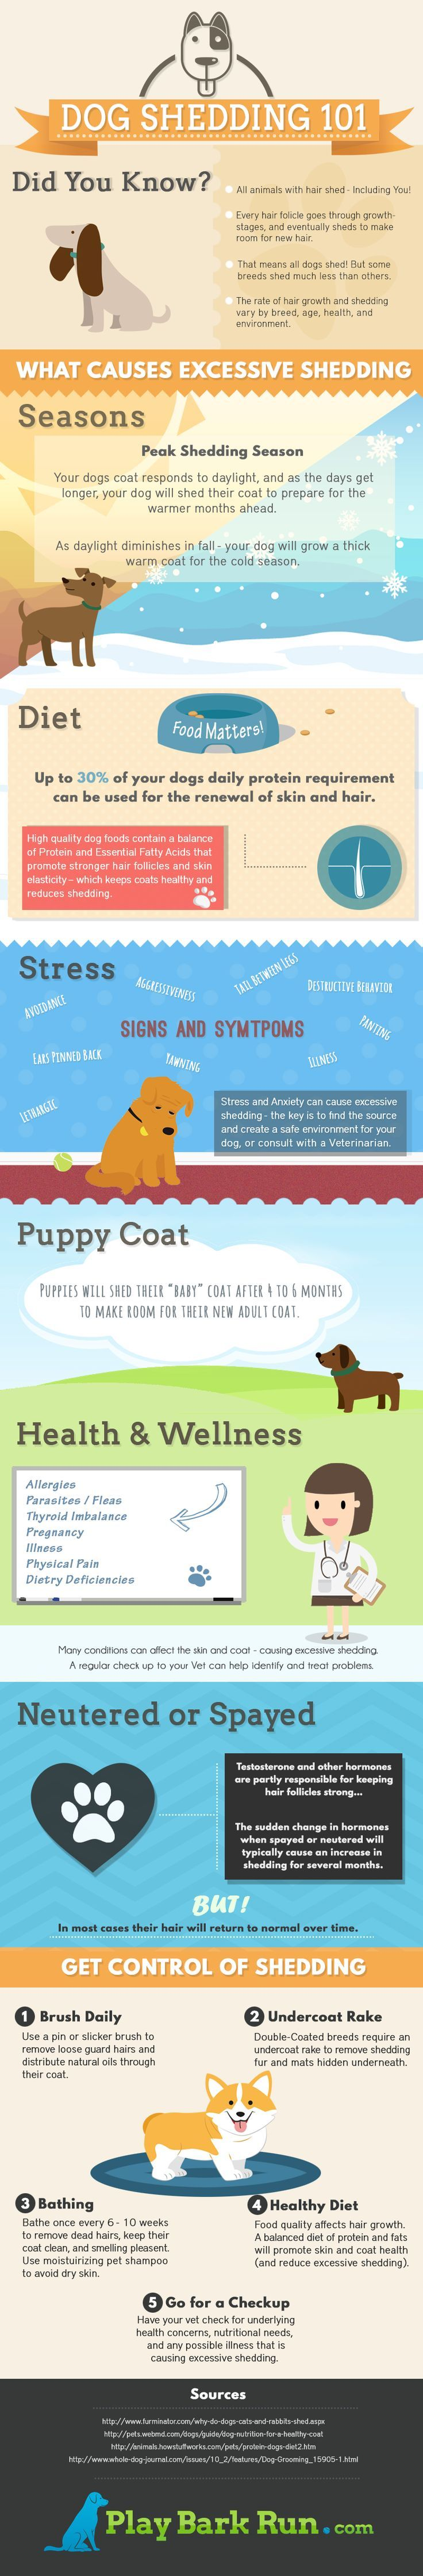 How To Stop Dog Shedding Home Remedy